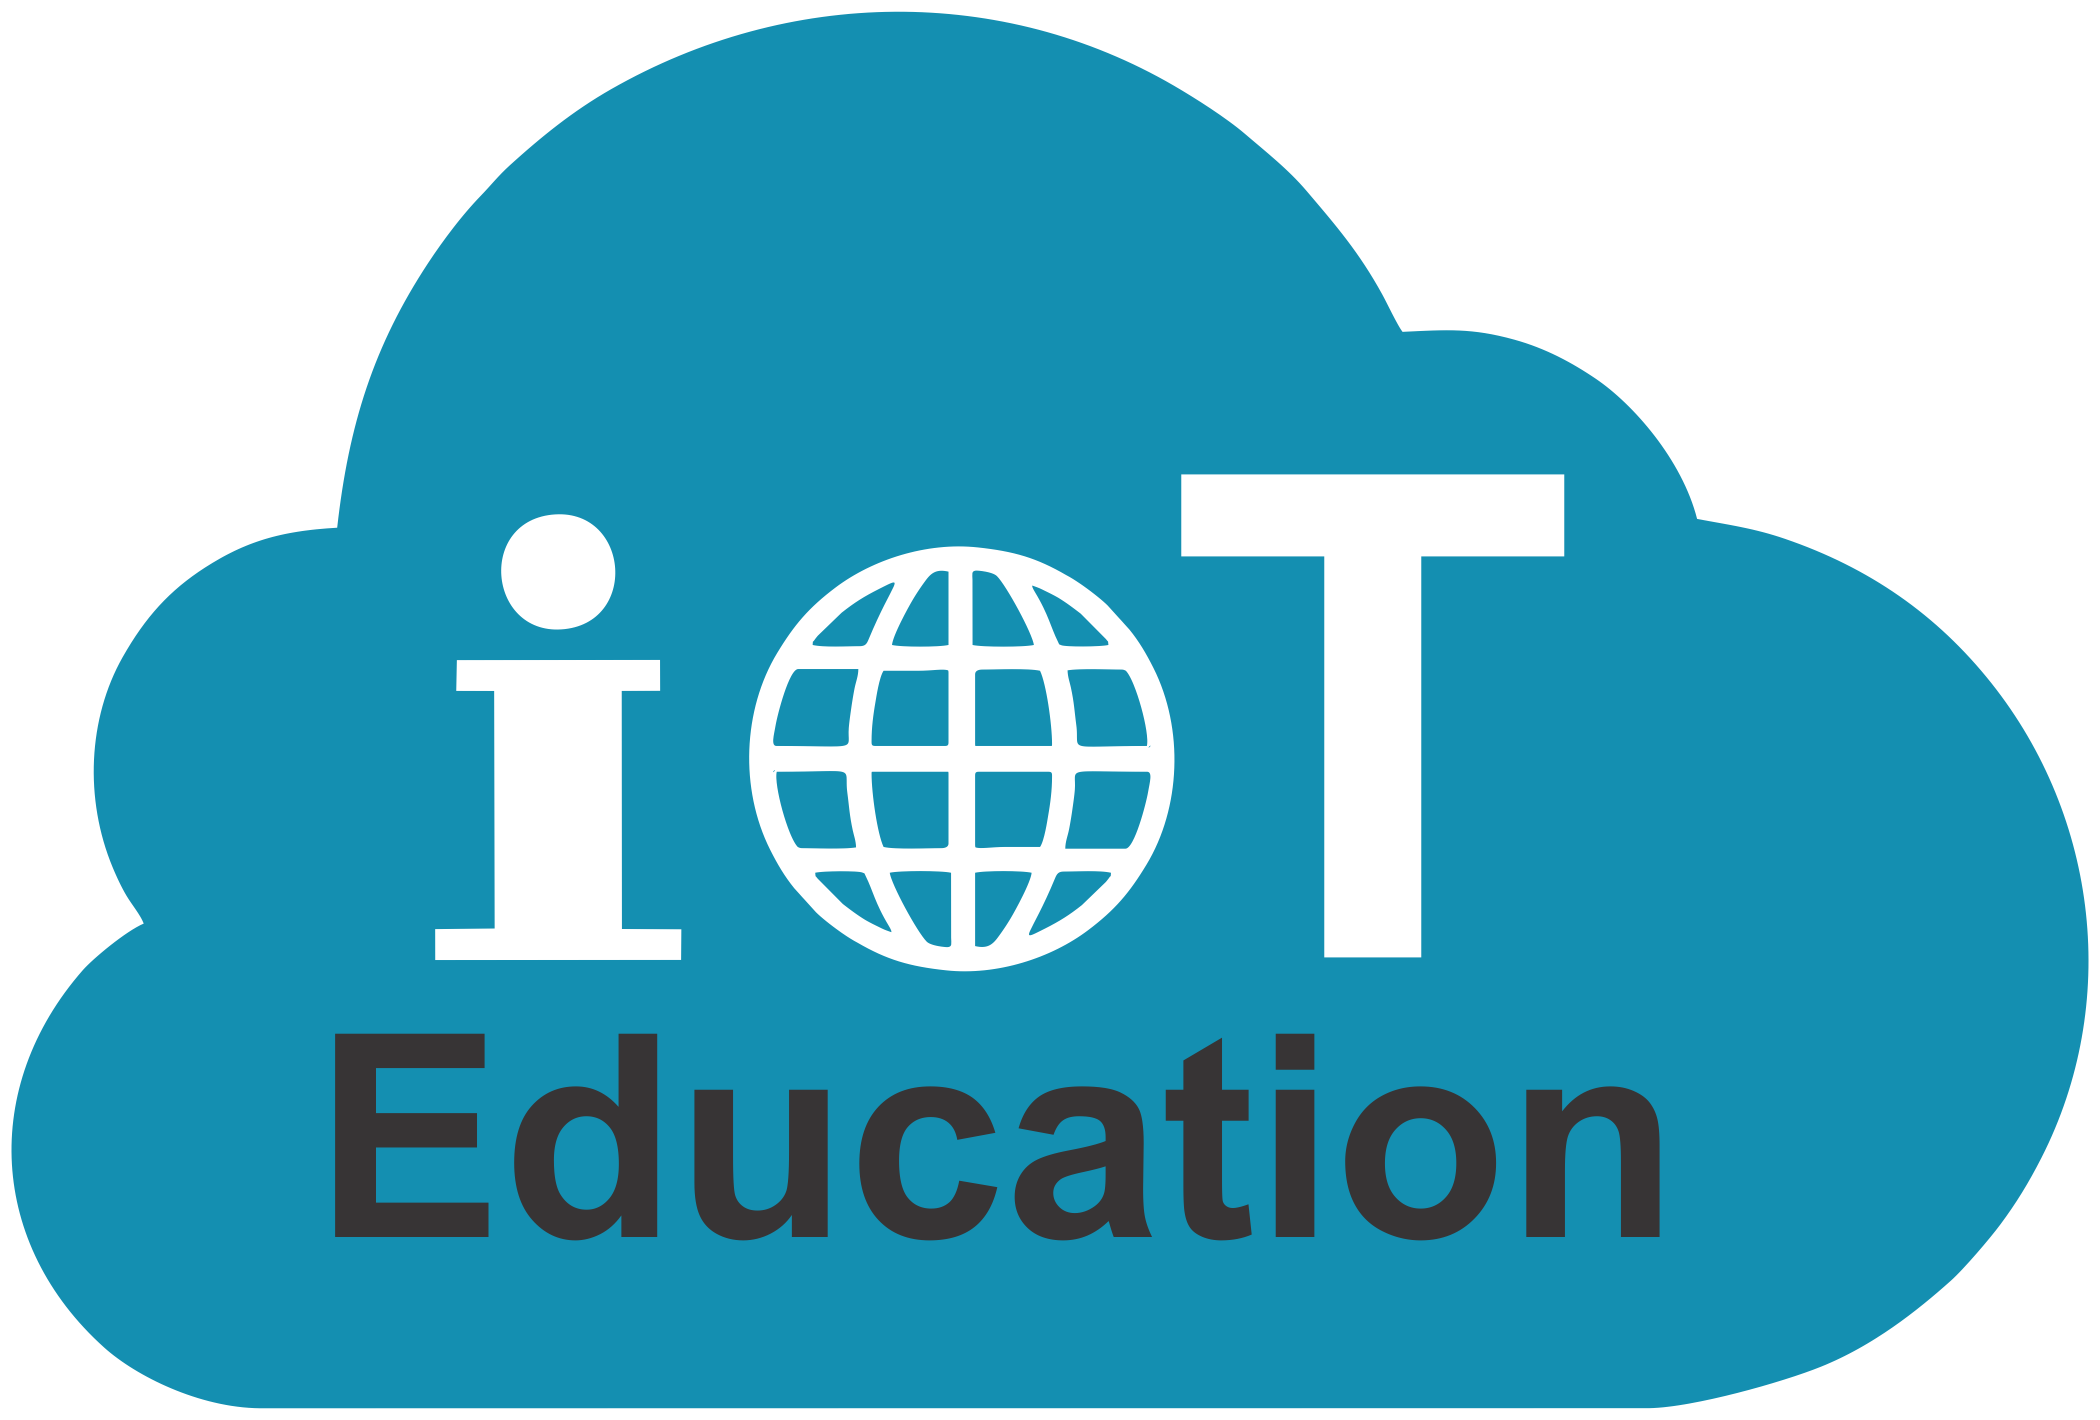 IoT Education